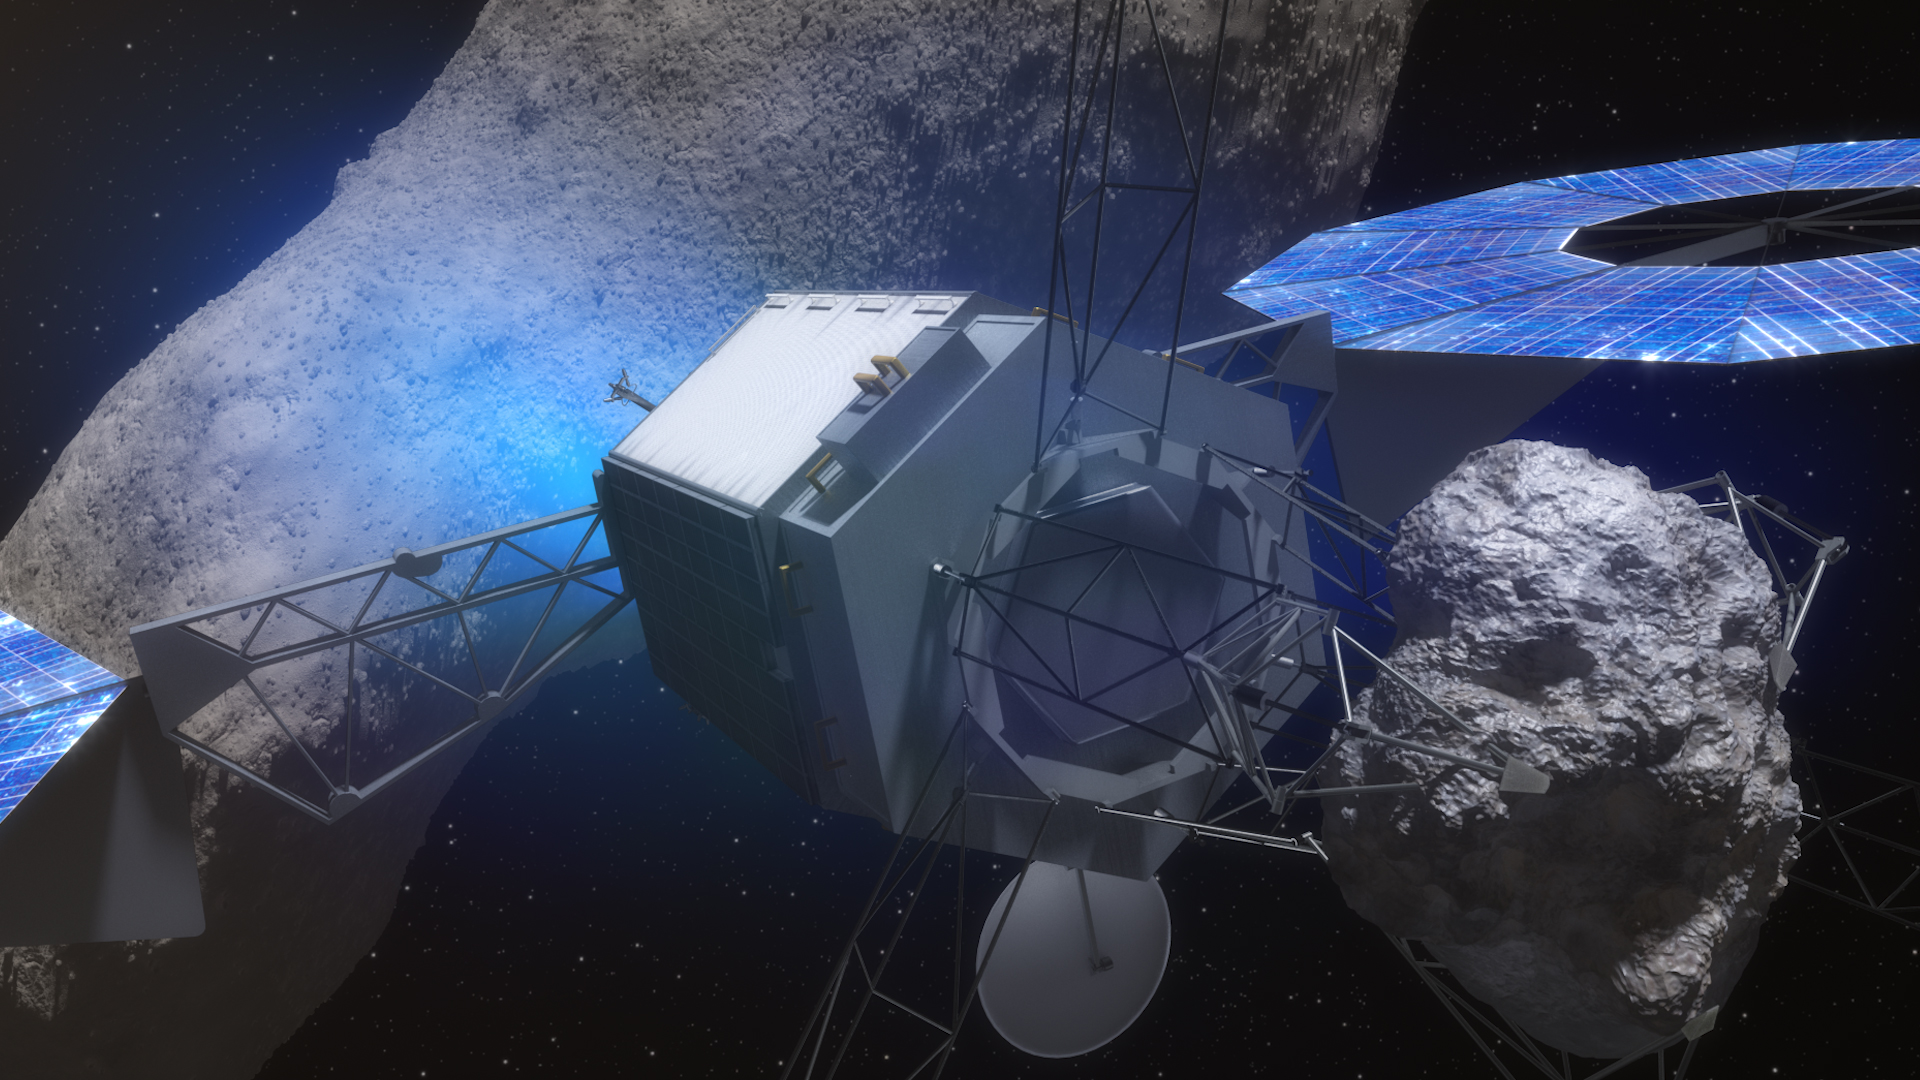 This artist's concept illustrates a potential option for the robotic segment of the Asteroid Redirect Mission (ARM), in which the spacecraft captures a boulder from a large asteroid and carries it to a distant lunar orbit for in-depth examination. Image Credit: NASA